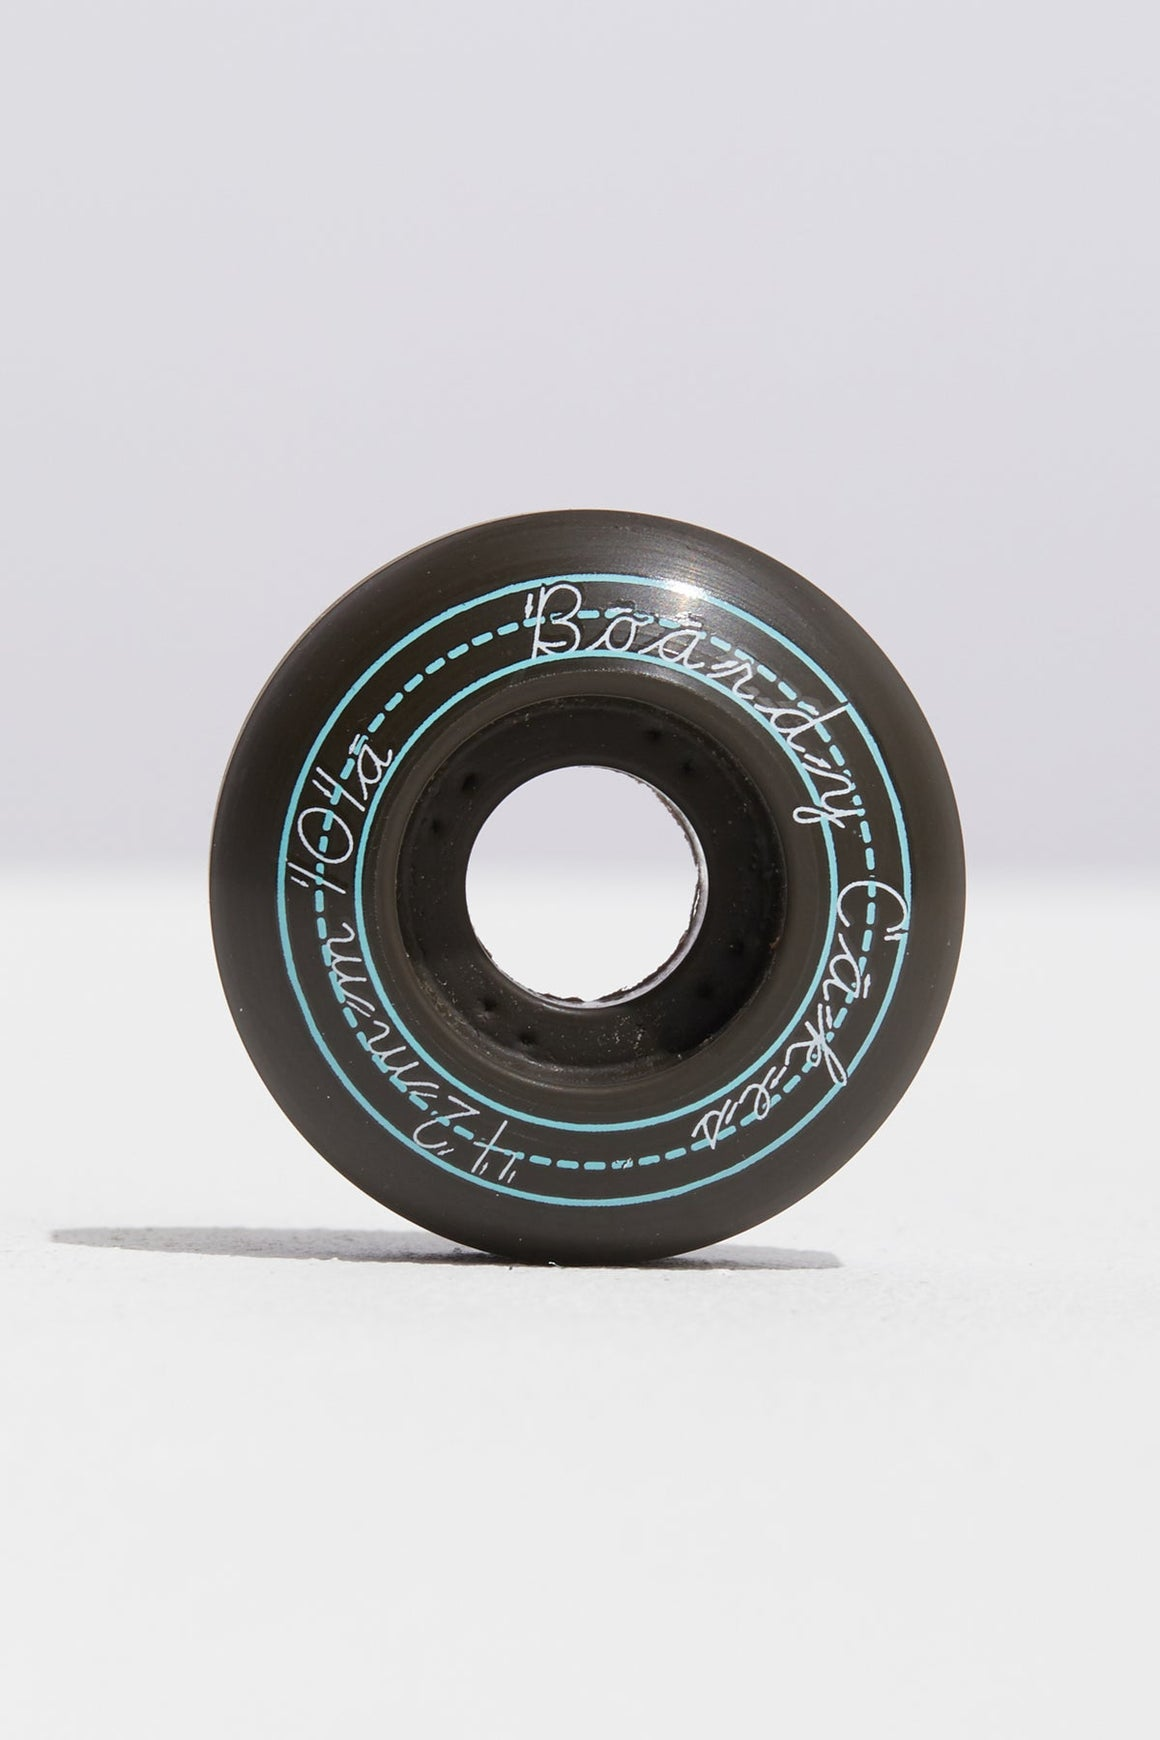 Boardy Cakes 42MM 101A Dark Brown Skateboard Wheels (42MM)